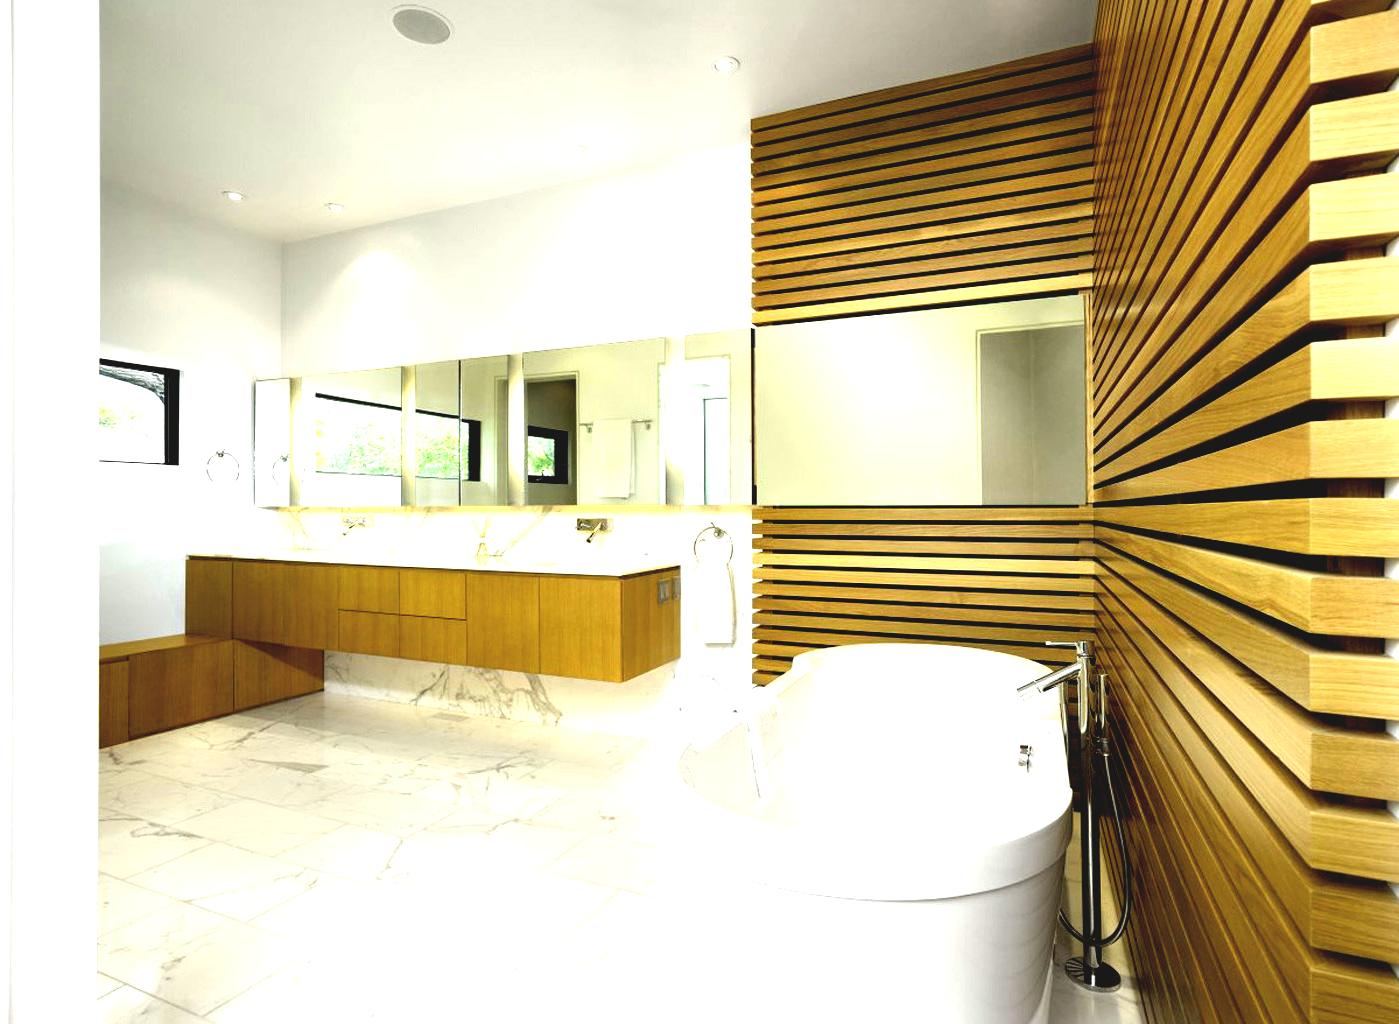 Modern Decorative Bathroom Wall Tiles Inspiration - The Wall Art ...